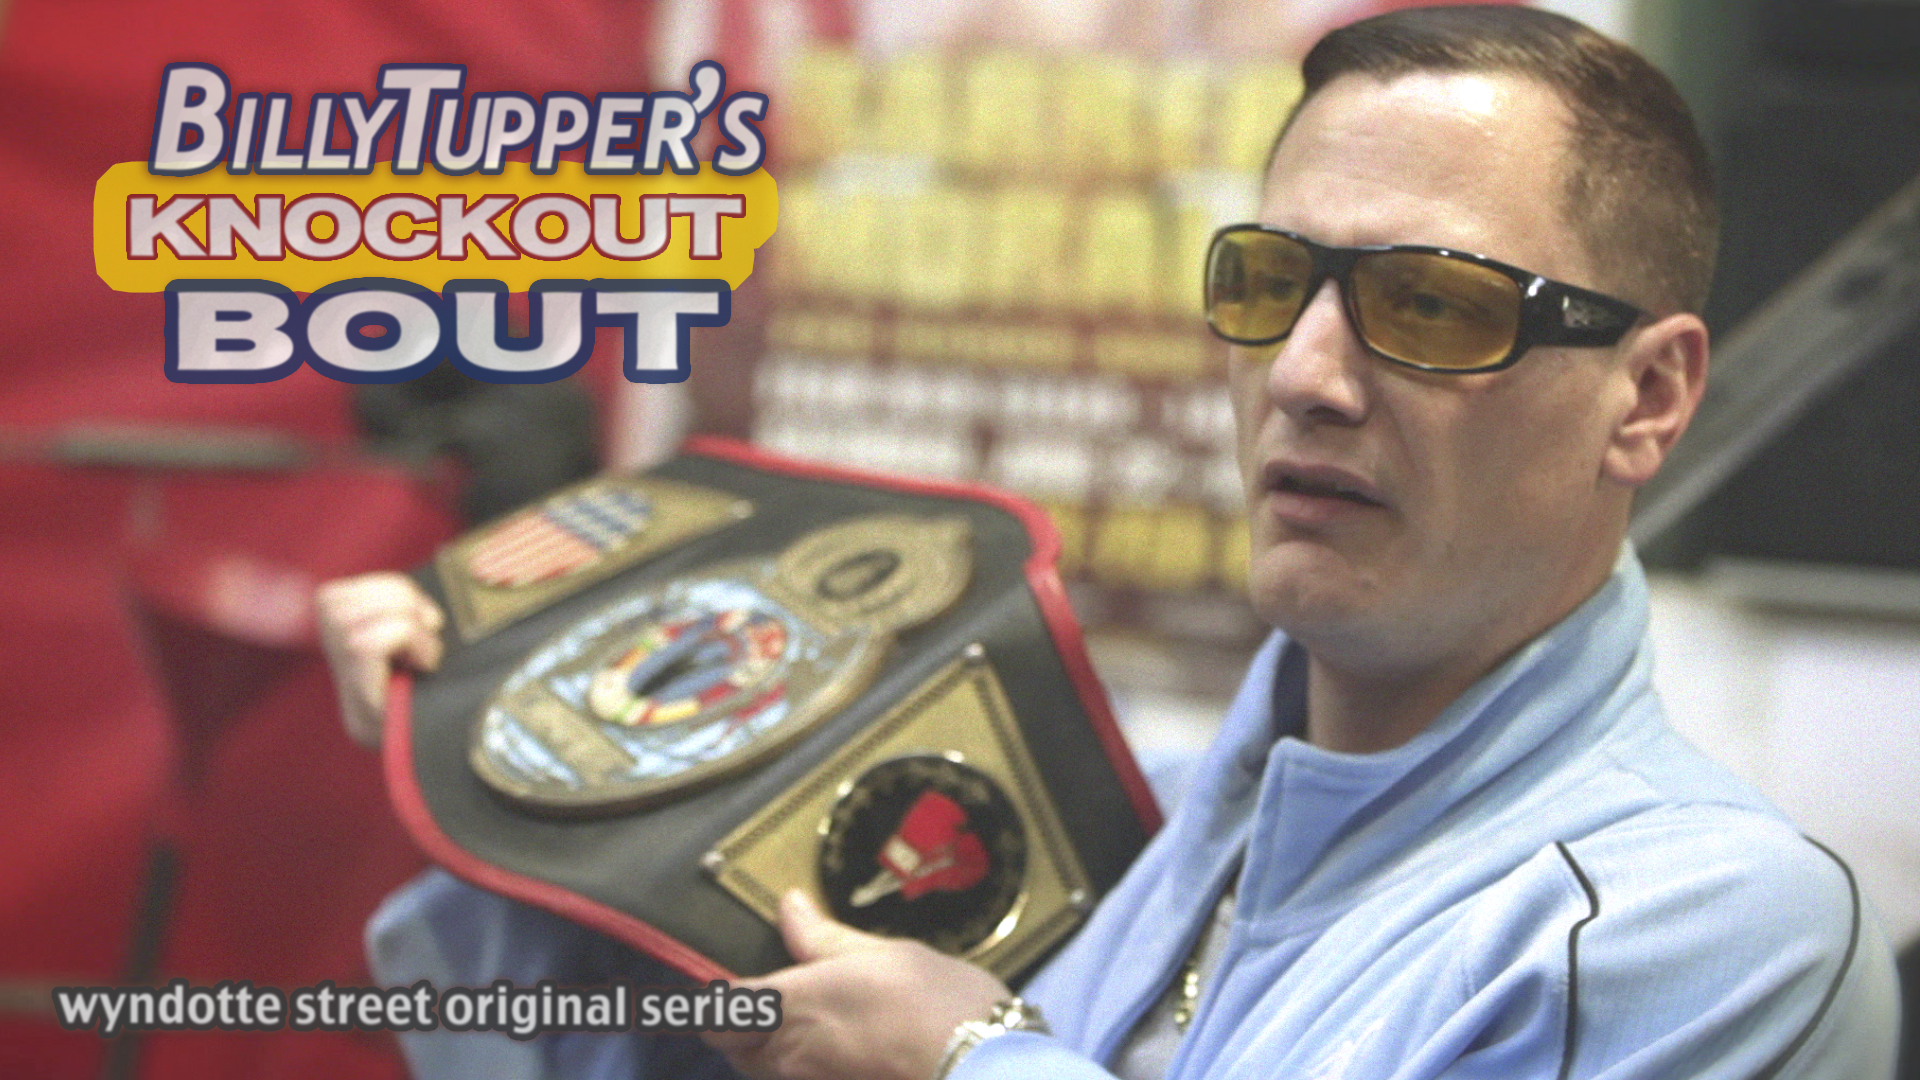 Billy Tupper's Knockout Bout Show Card